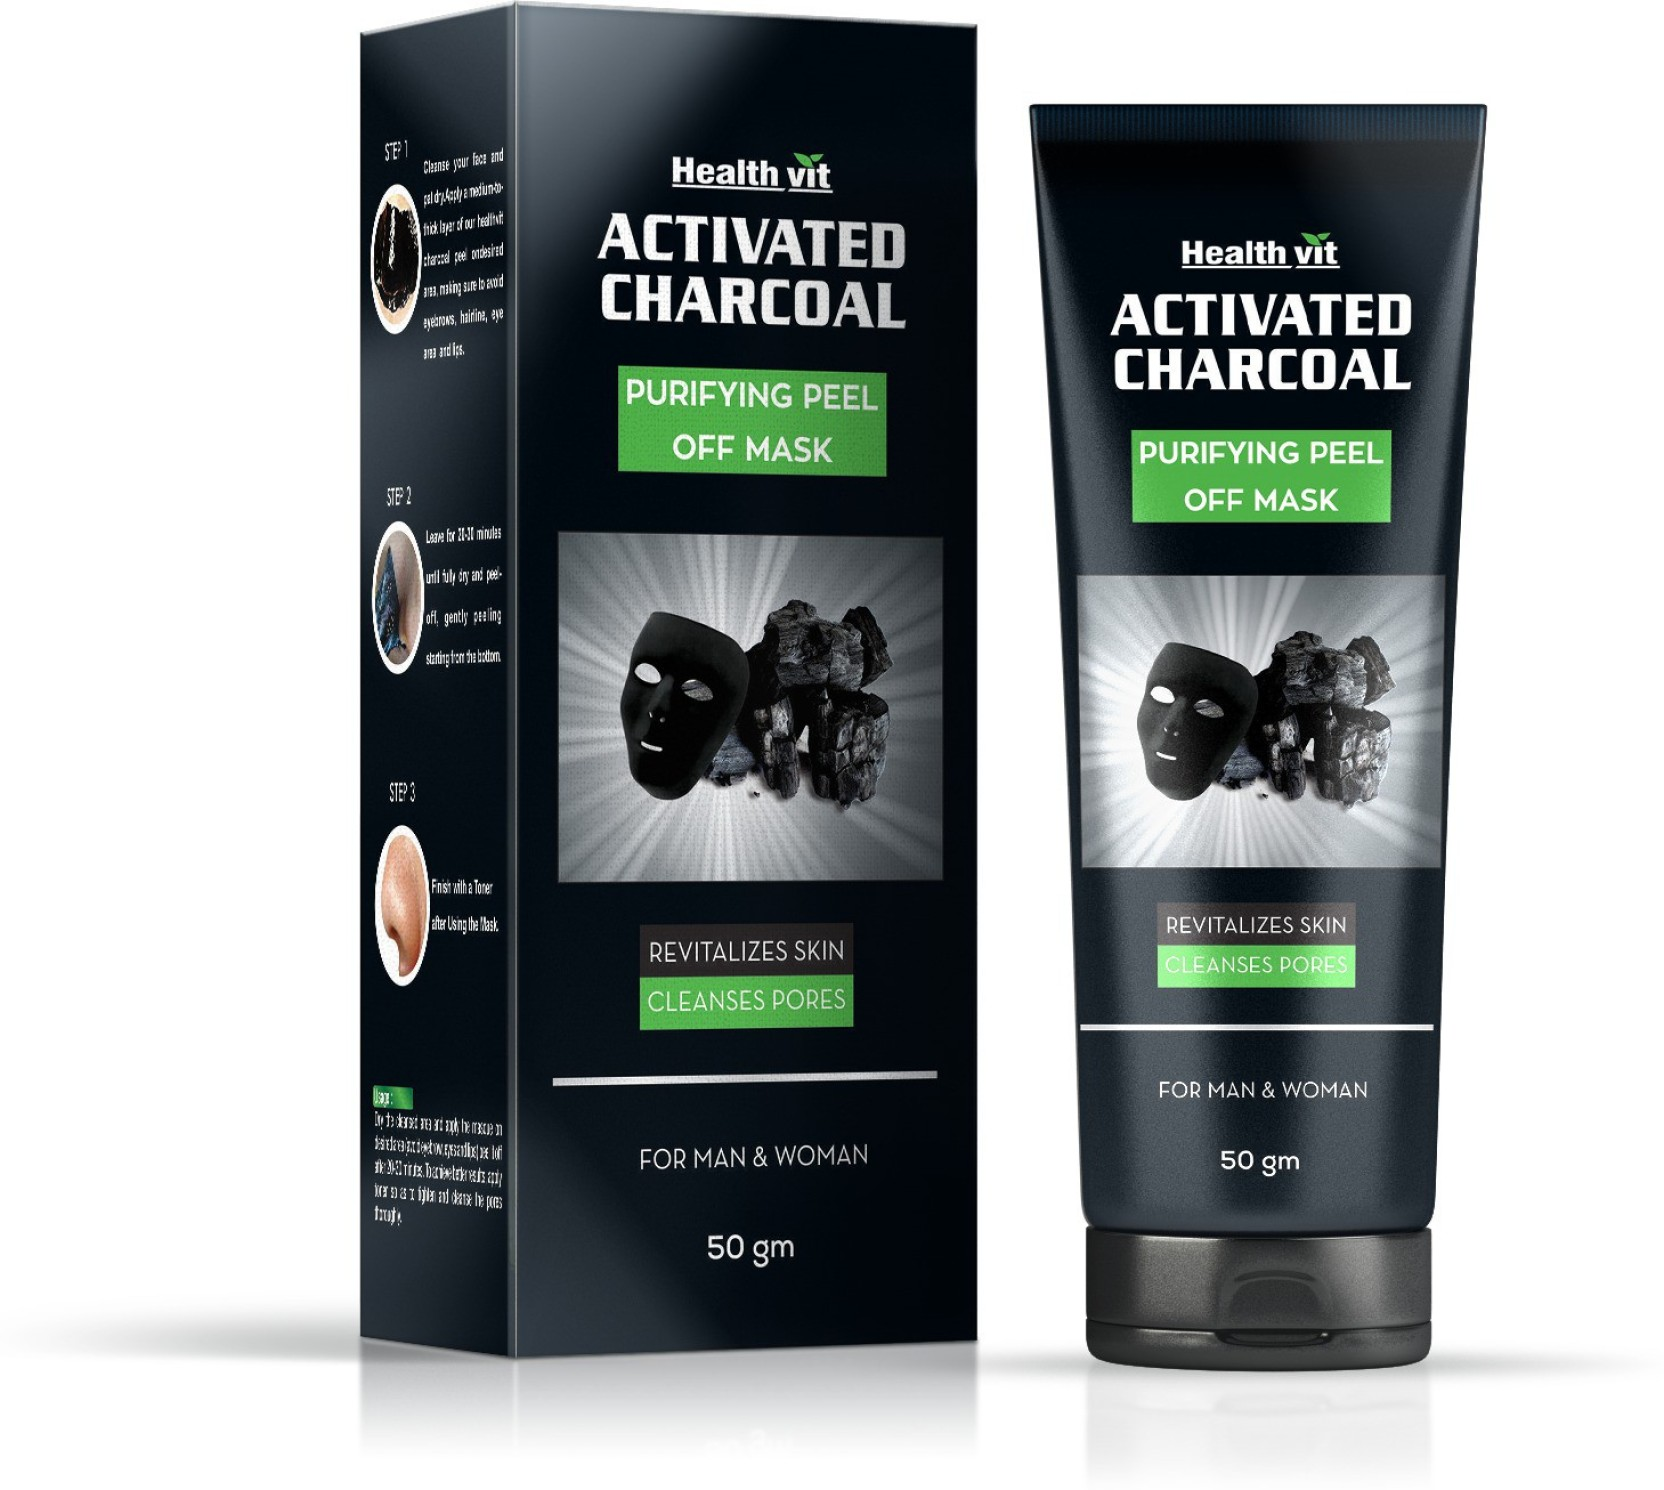 Healthvit Activated Charcoal Purifying Peel Off Mask 50gm Price In Shills Black Original Shill Add To Cart